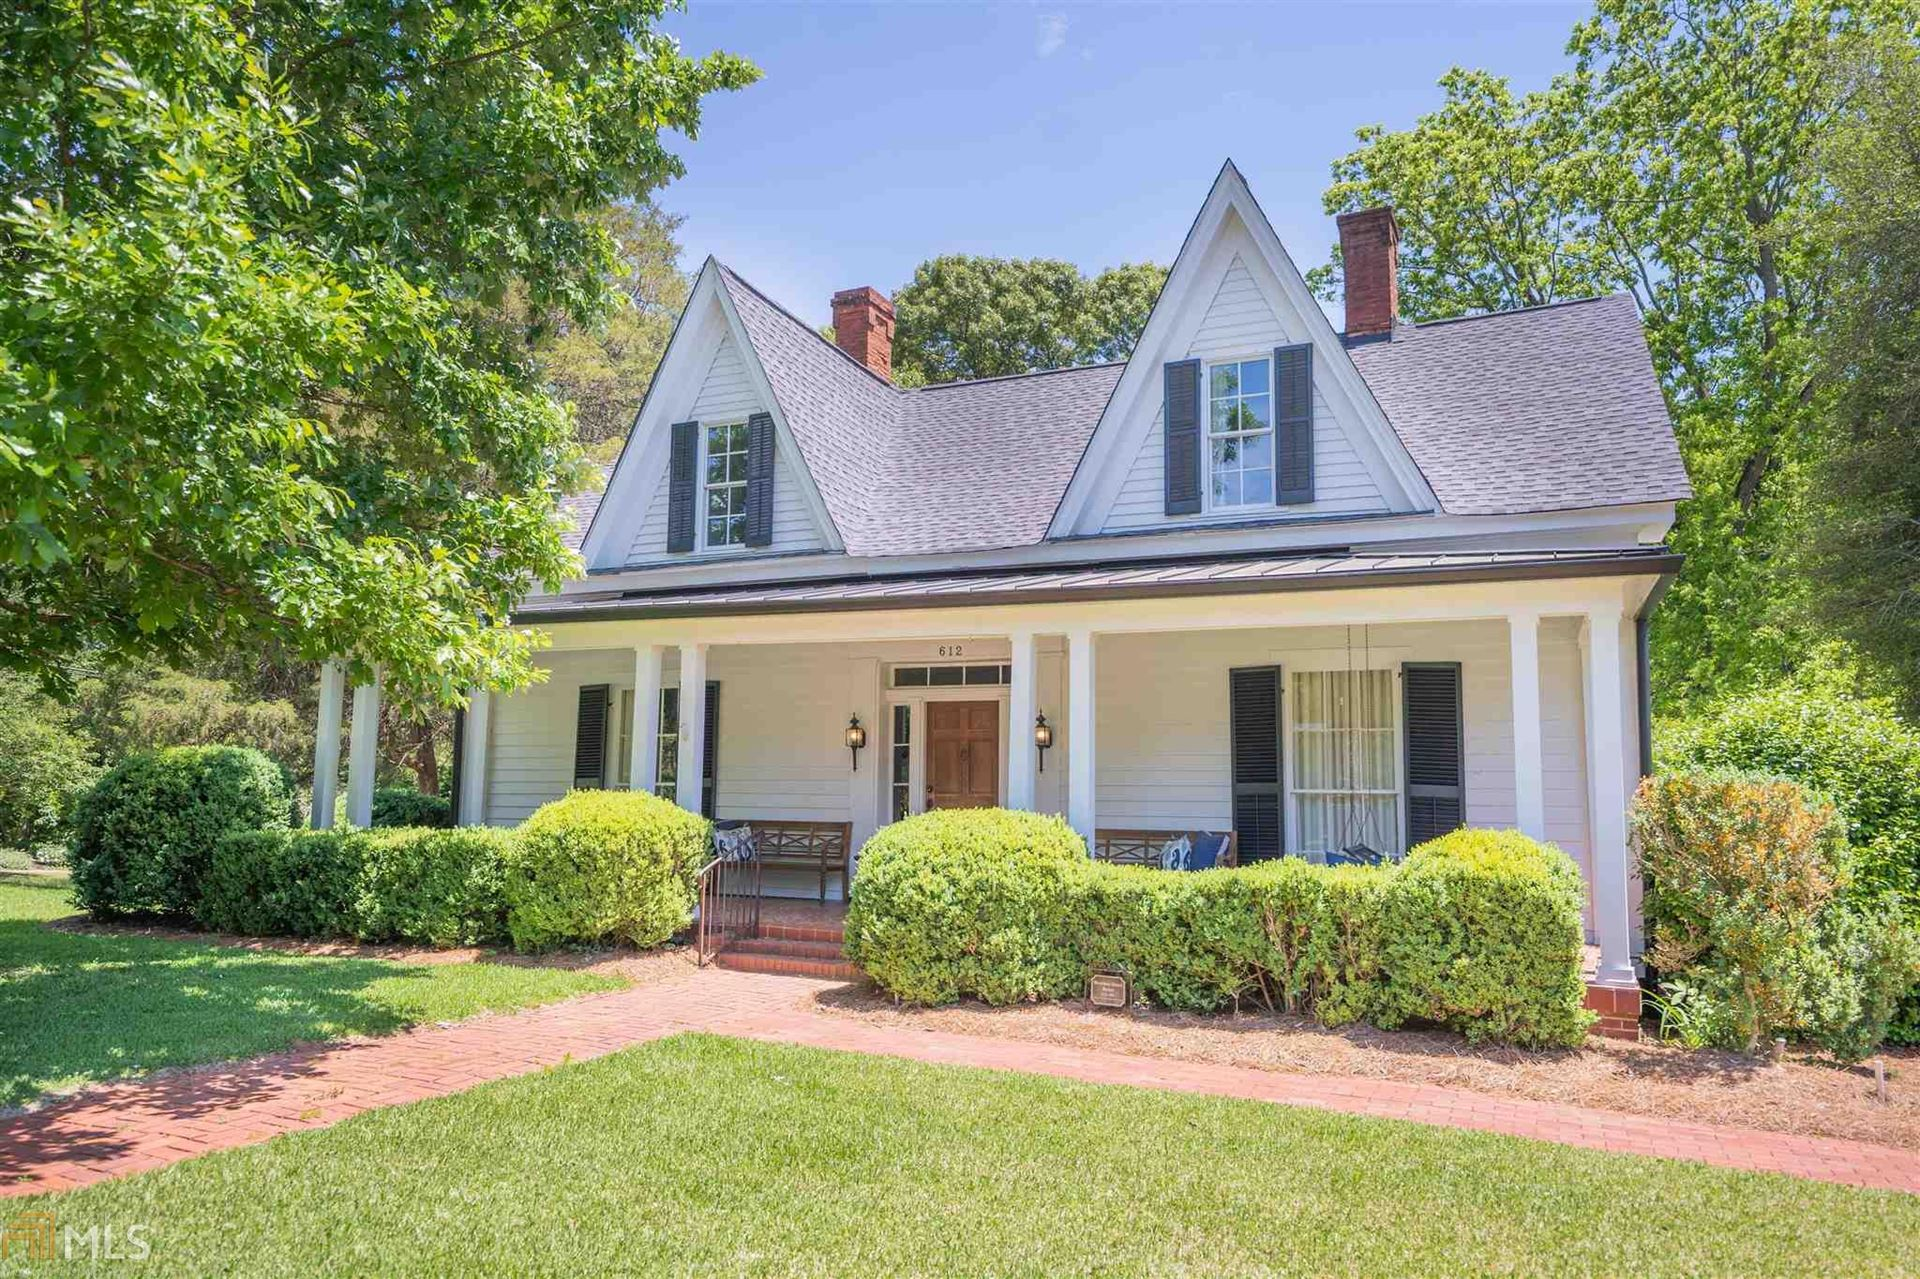 Photo of 612 Old Post Rd, Madison, GA 30650 (MLS # 8913401)